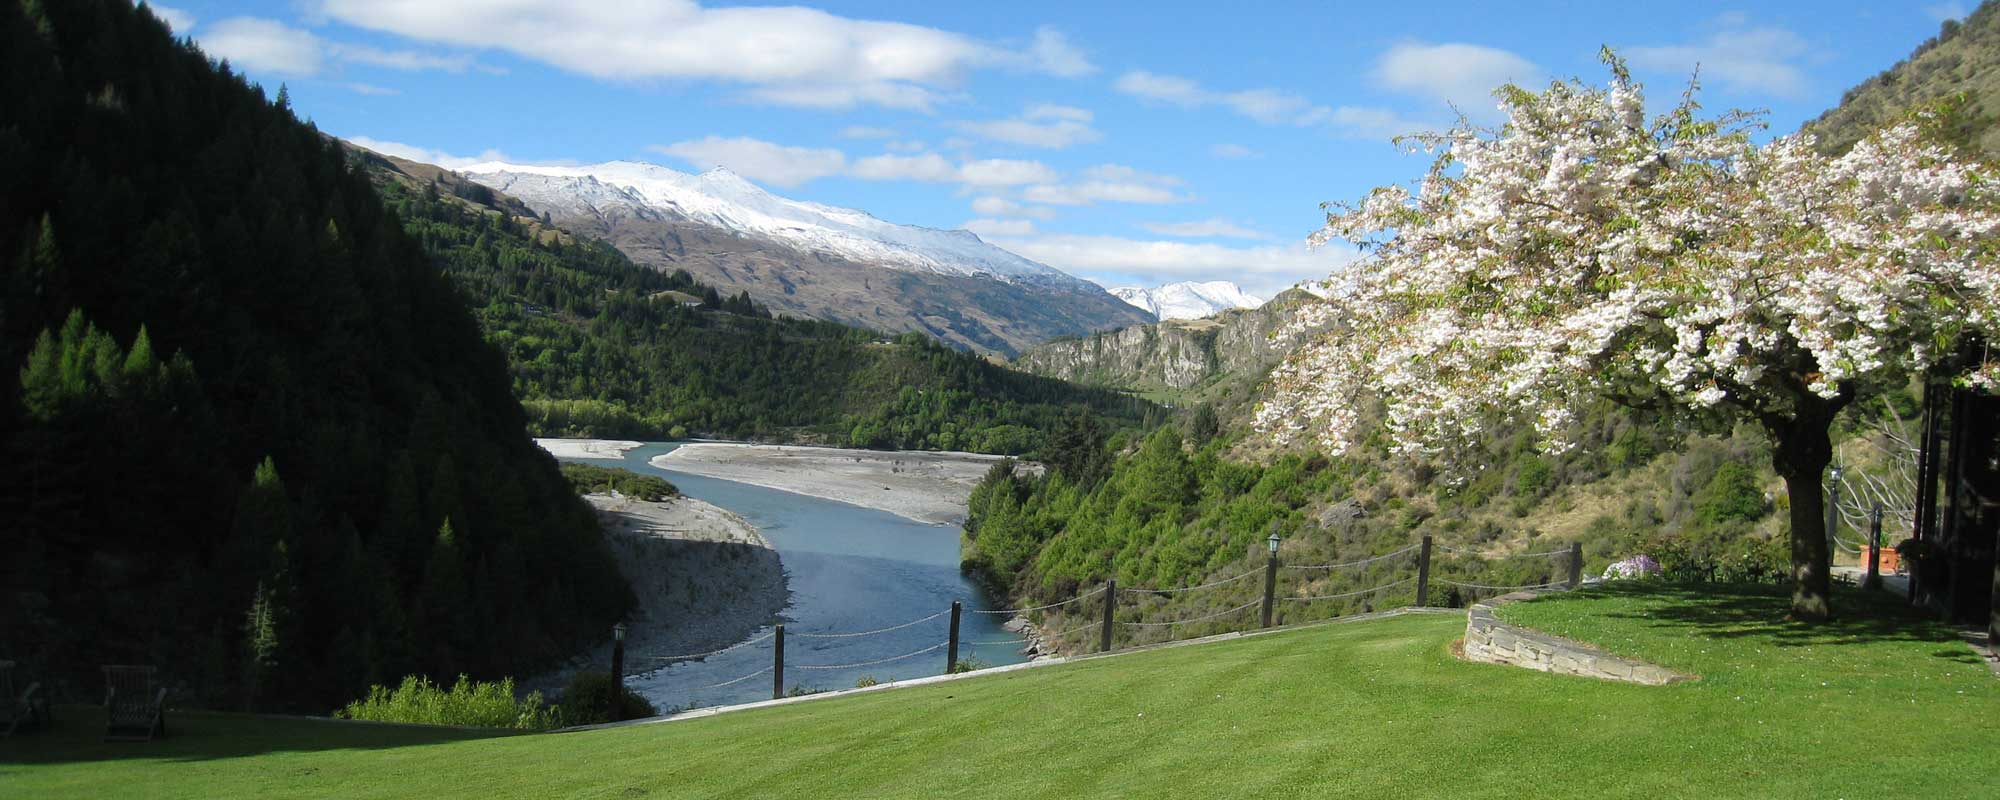 View to the mountains and river from our boutique accommodation near Queenstown